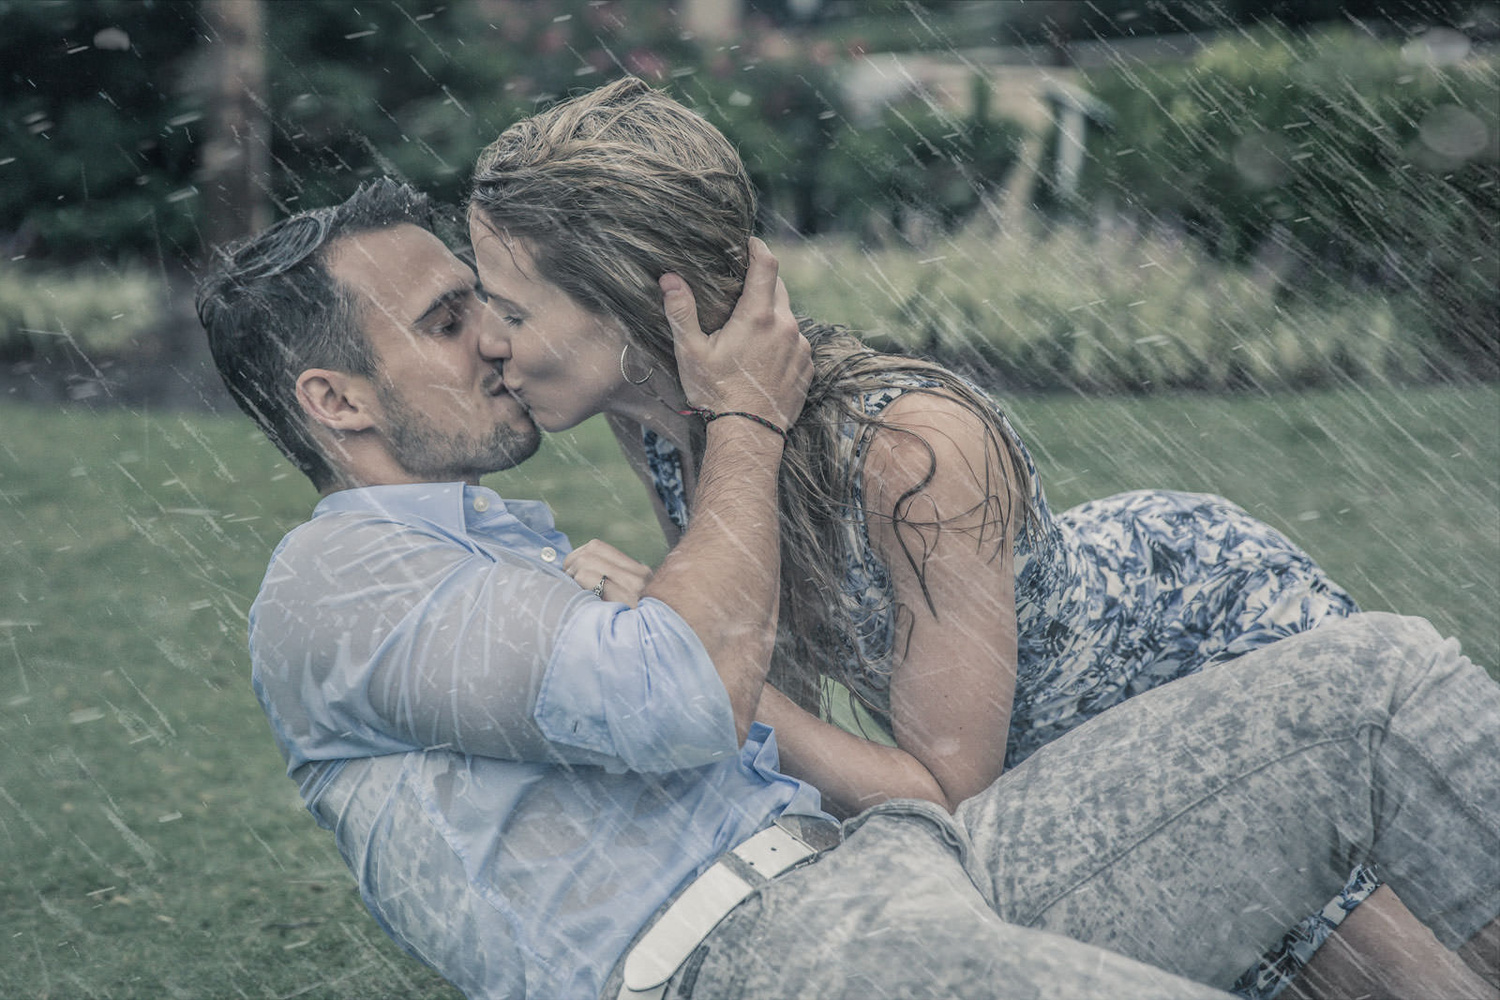 Engagement in the Rain by Peter Togel